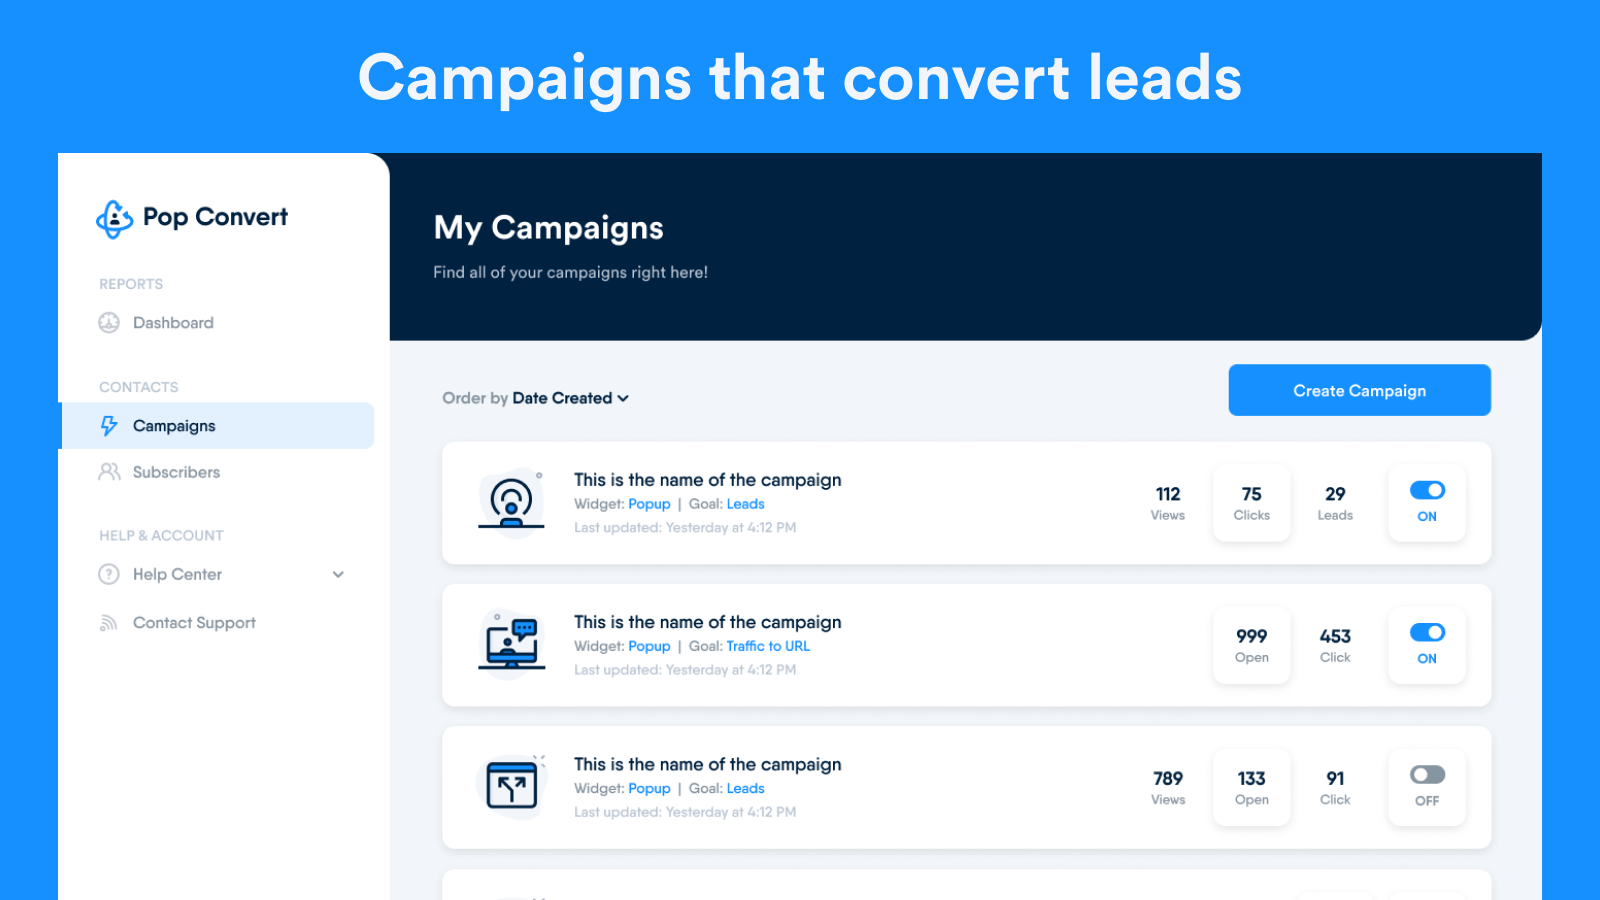 Campaigns that convert leads